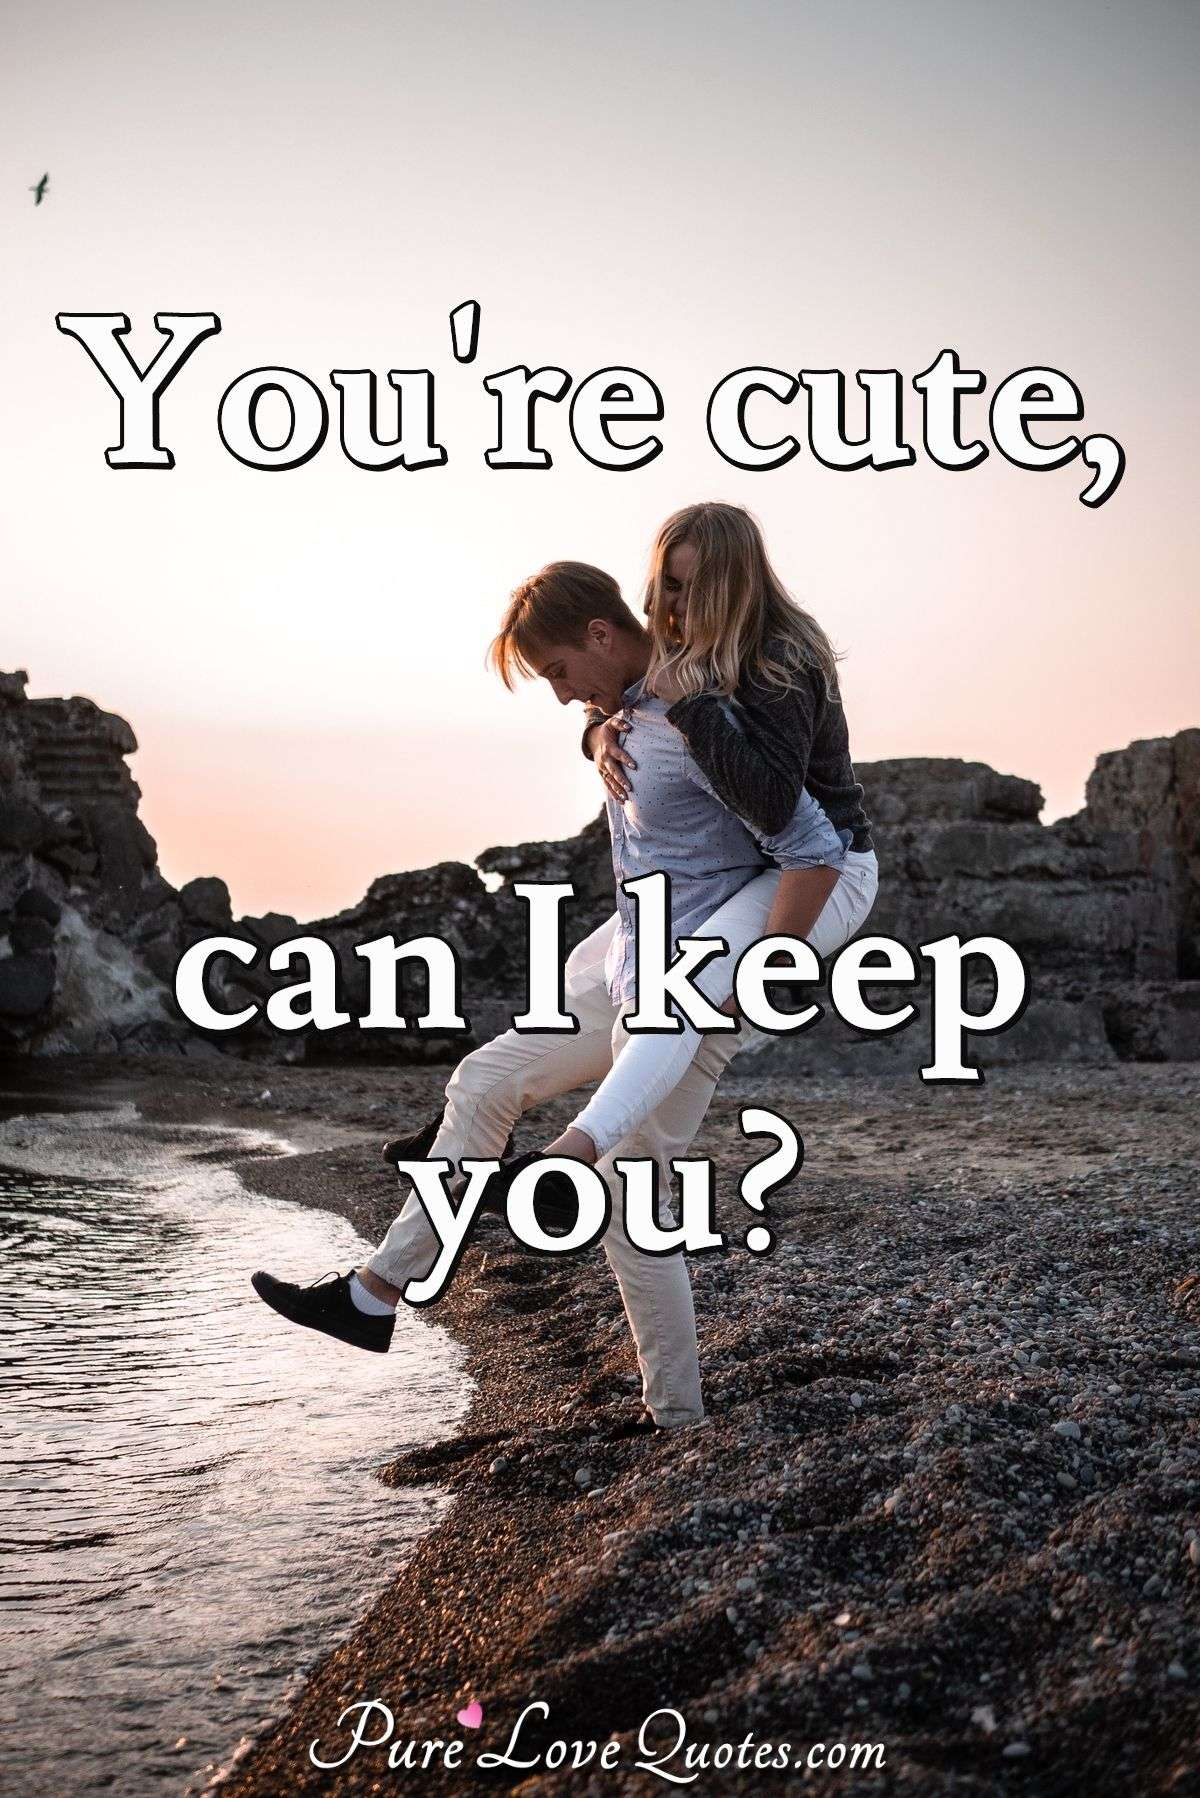 Cute quotes so Cute and